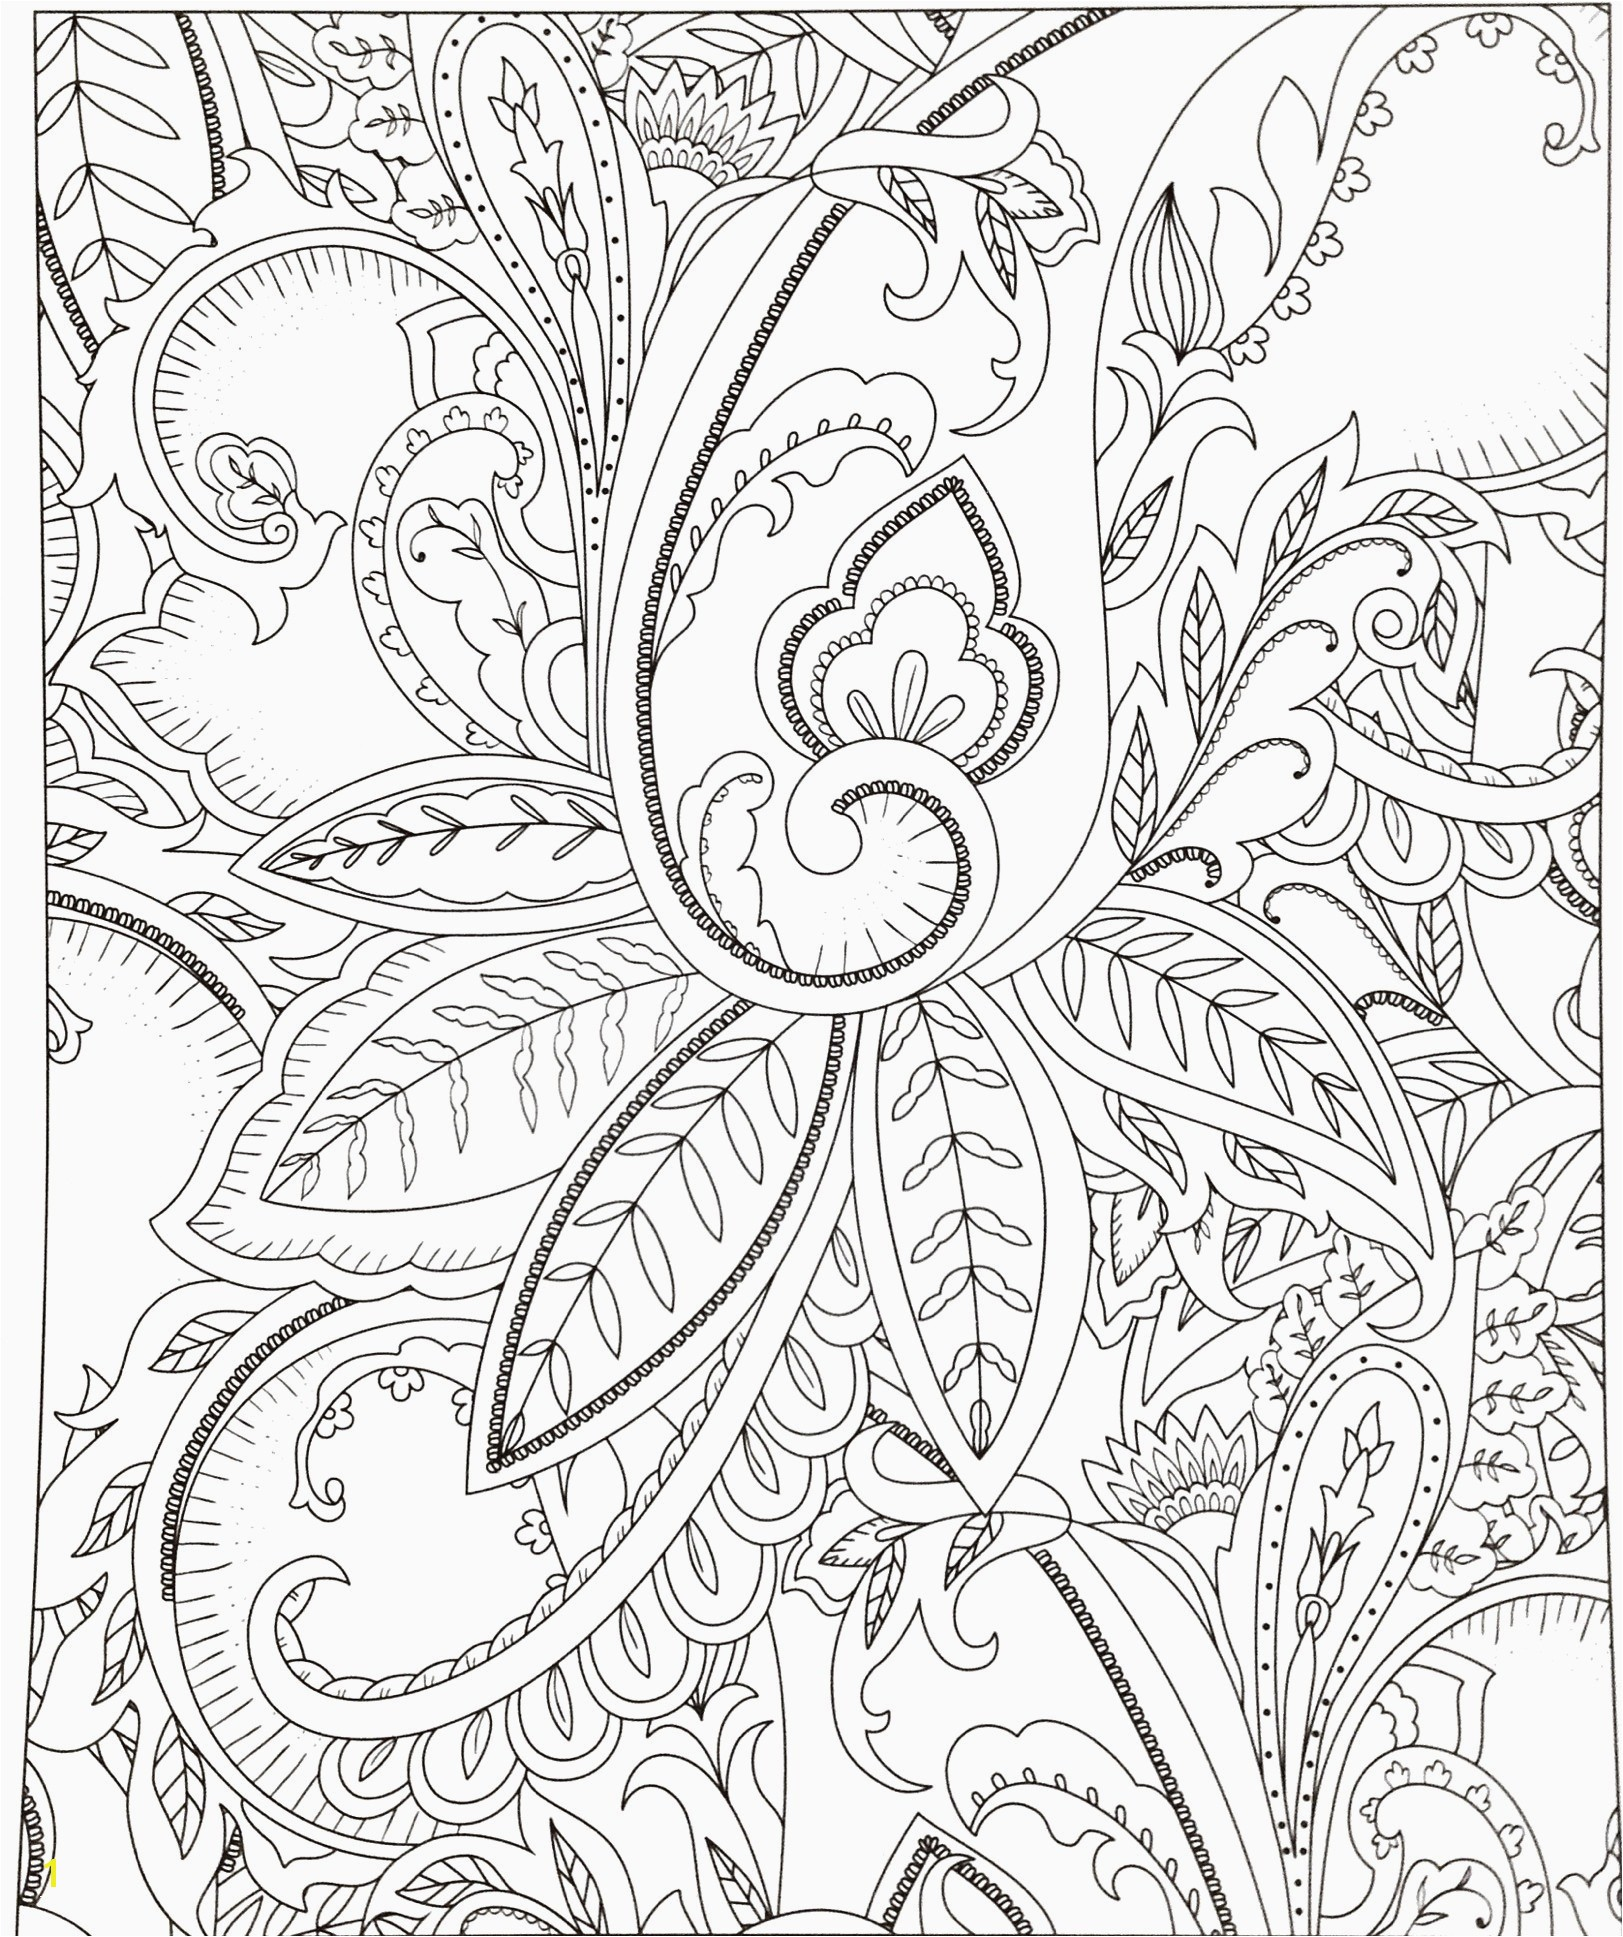 Coloring Heets Lovely Home Coloring Pages Best Color Sheet 0d – Modokom – Fun Time